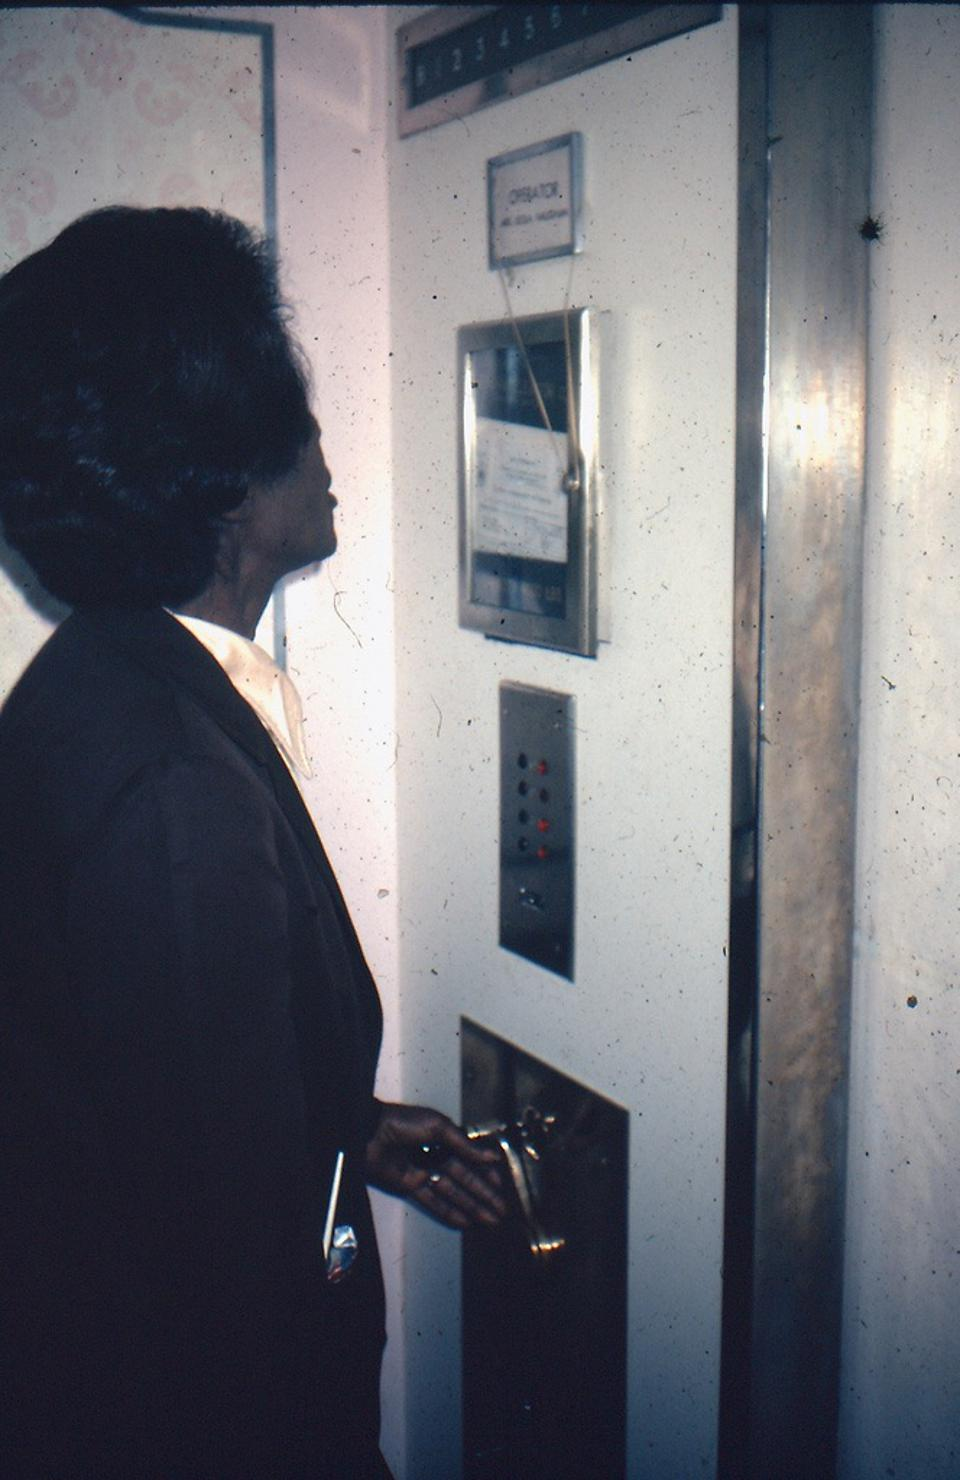 Baltimore's Hutzler's hired African American women as elevator operators.